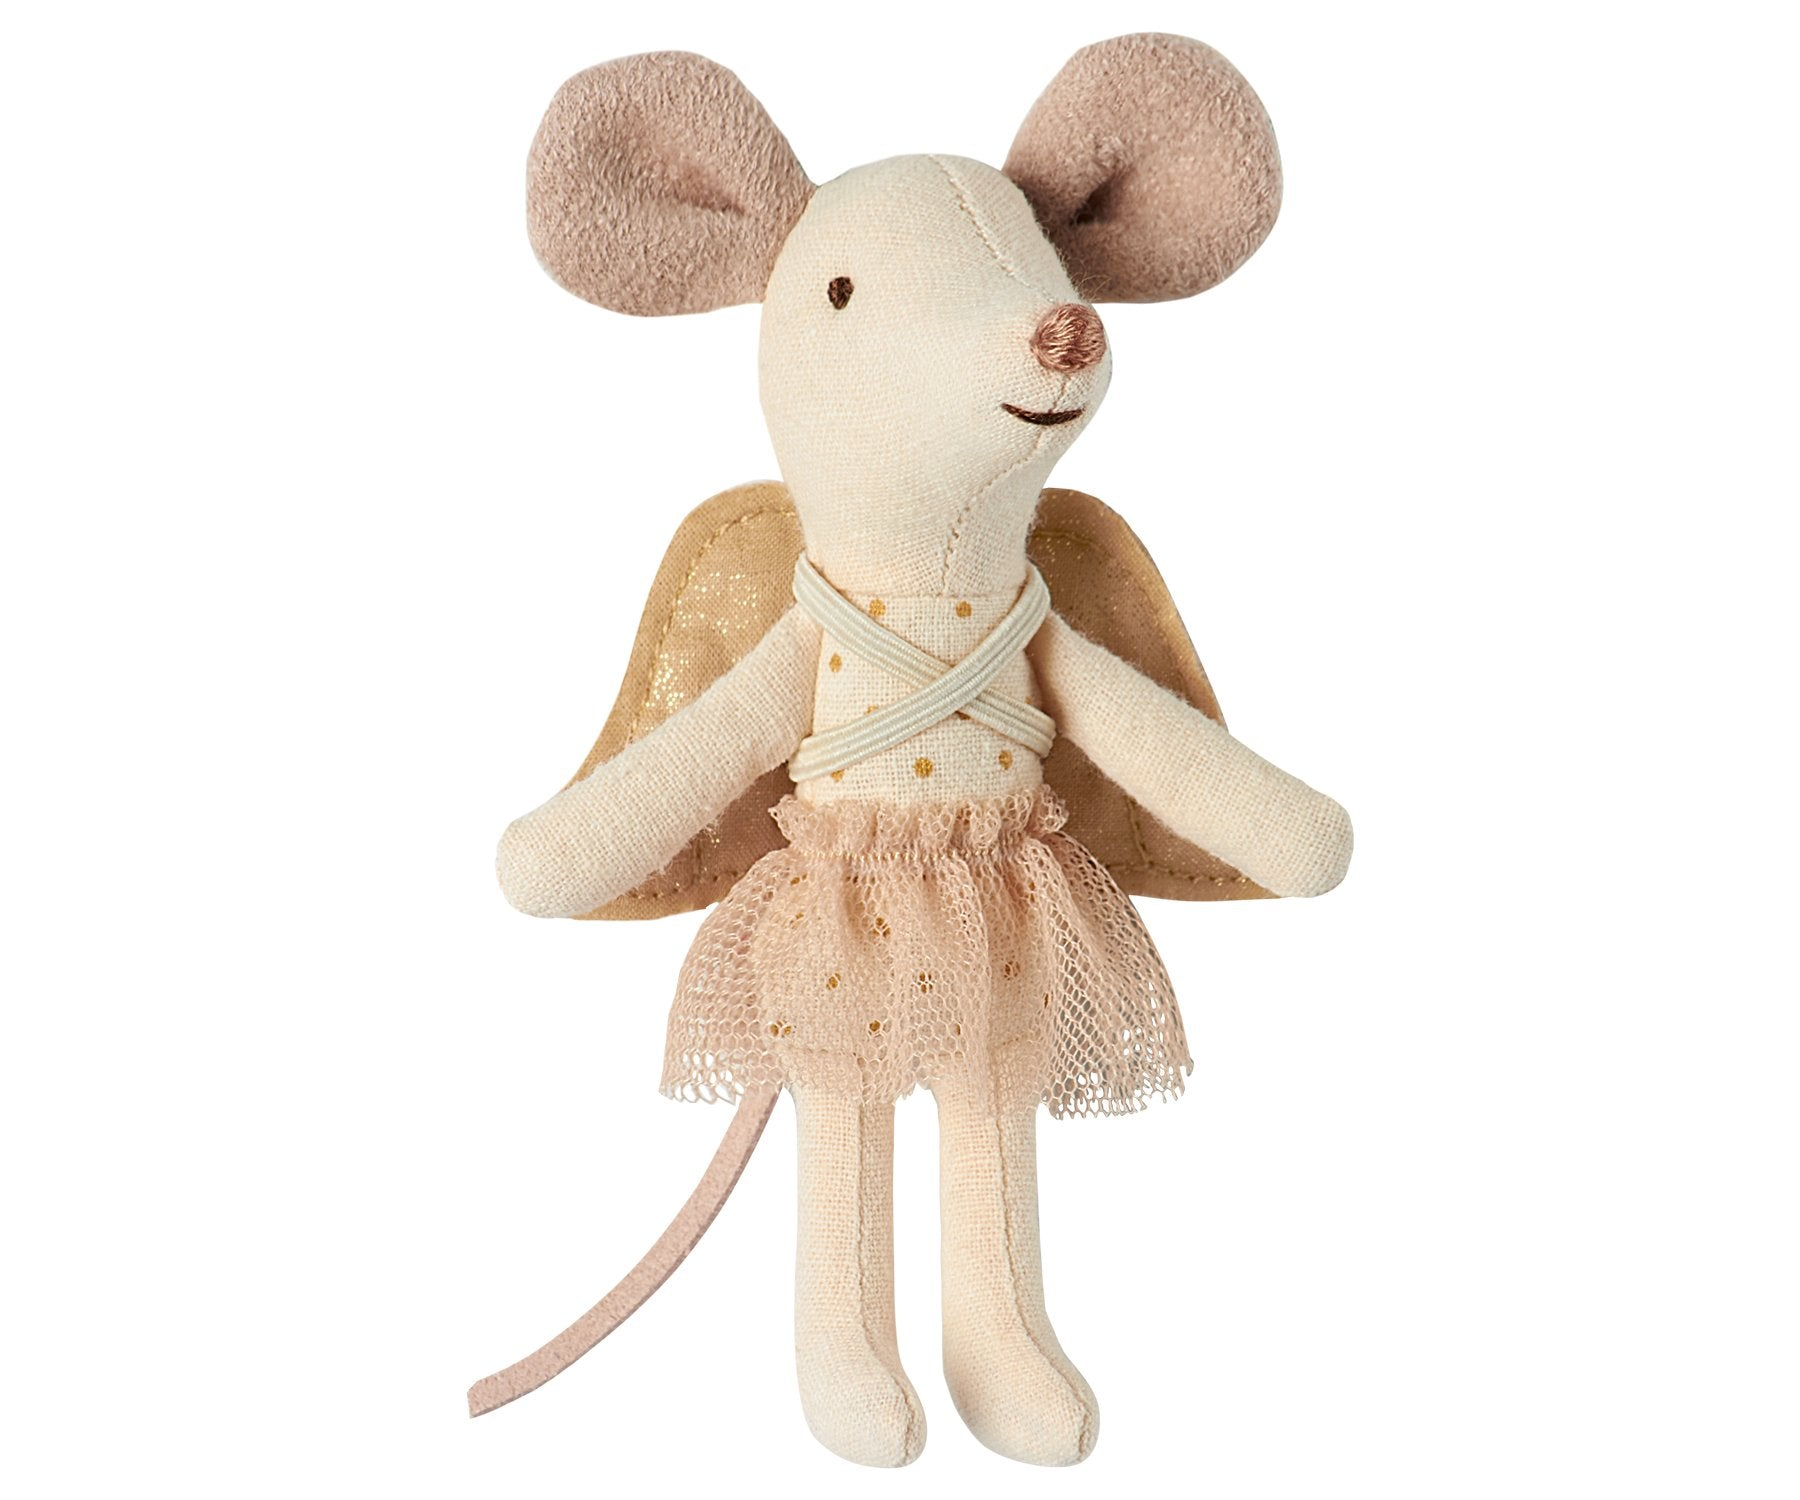 MOUSE GUARDIAN ANGEL